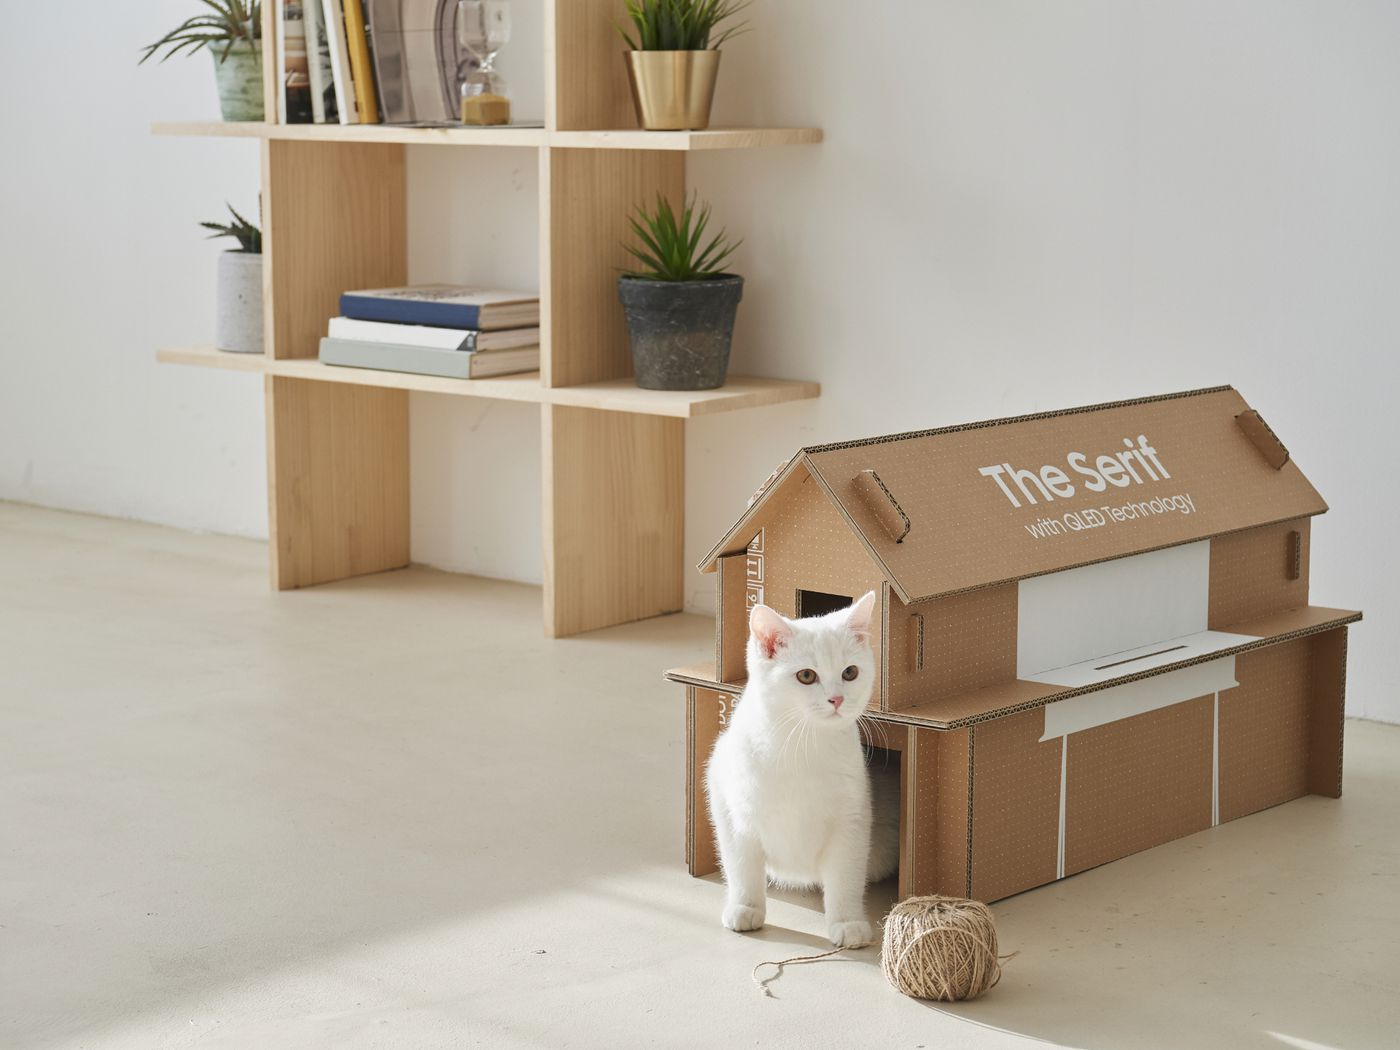 Samsung S New Tv Packaging Can Be Recycled To Make A Cat House The Verge